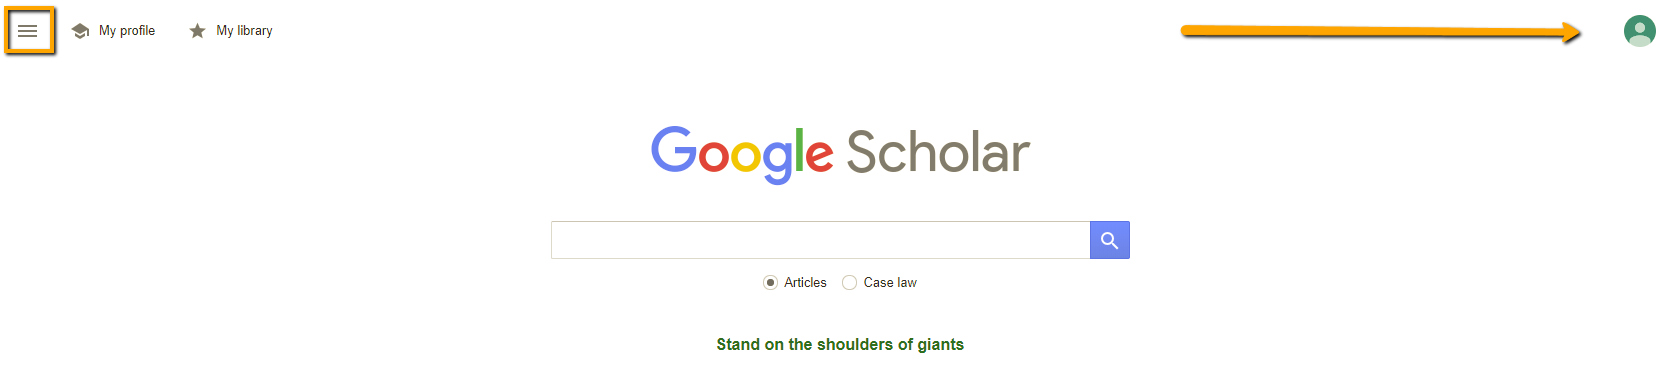 google scholar login to google account